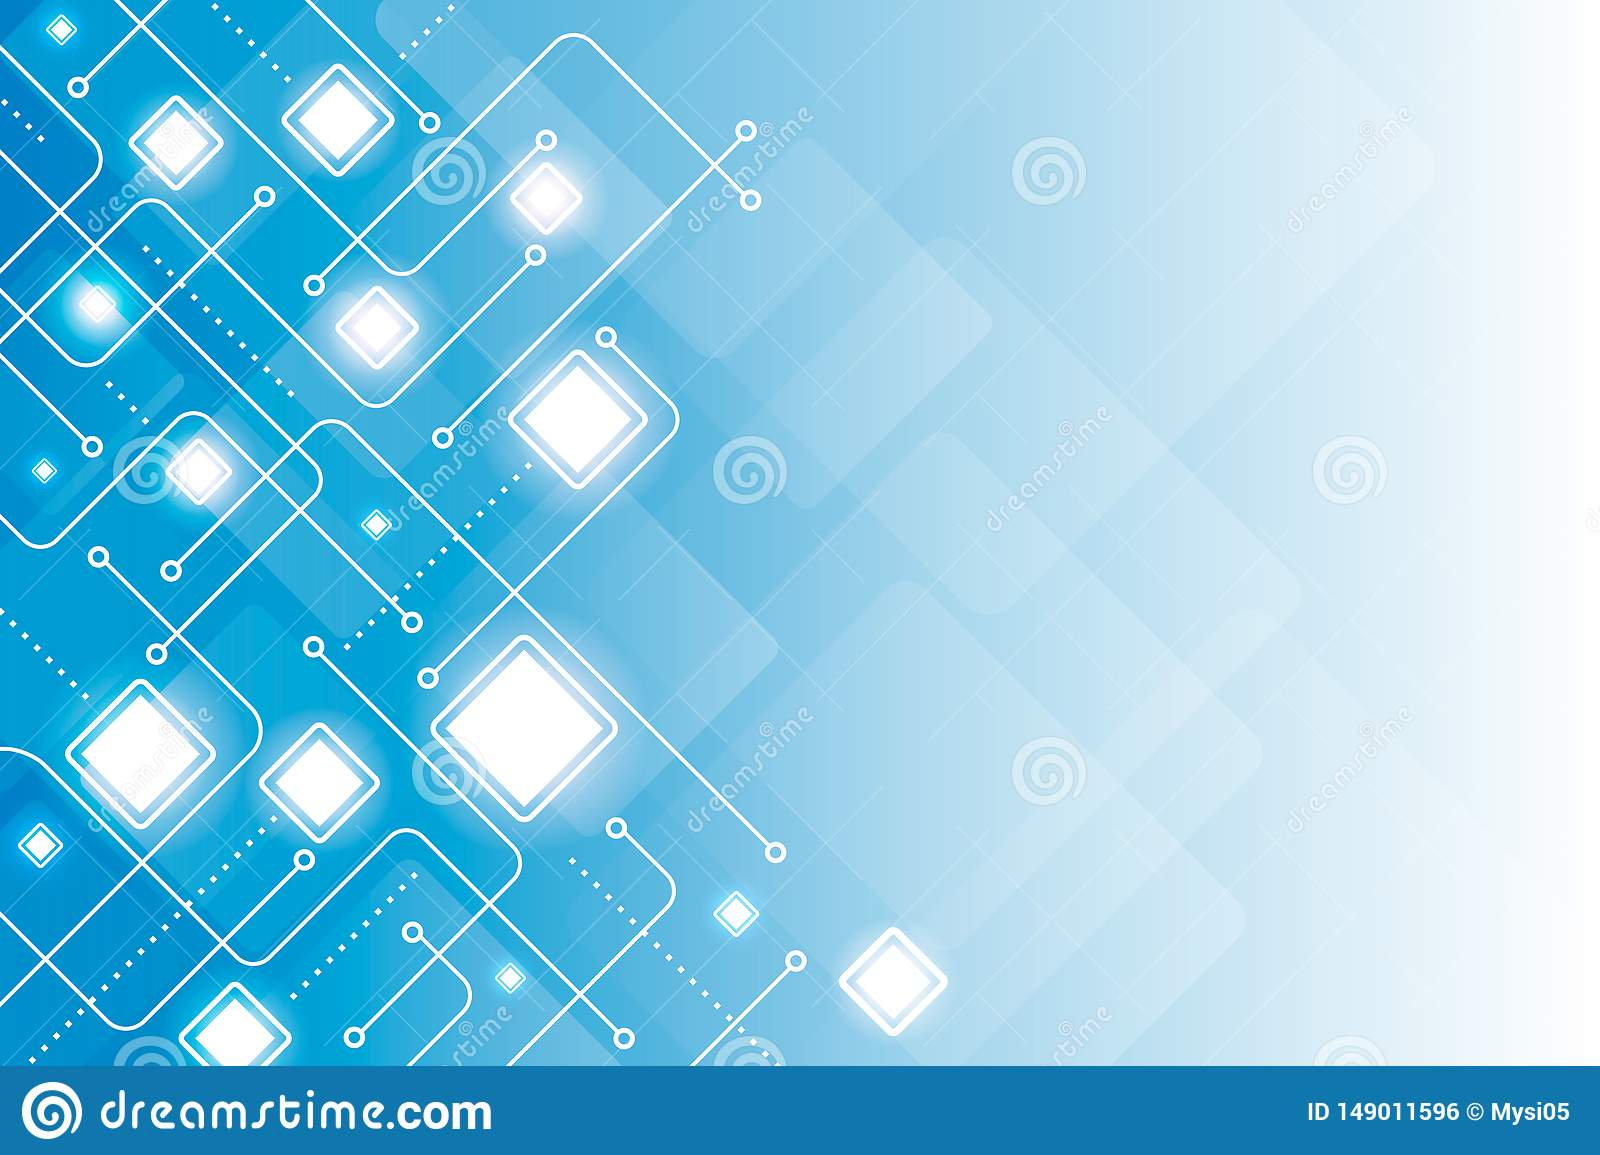 Abstract digital line geometric blue background vector